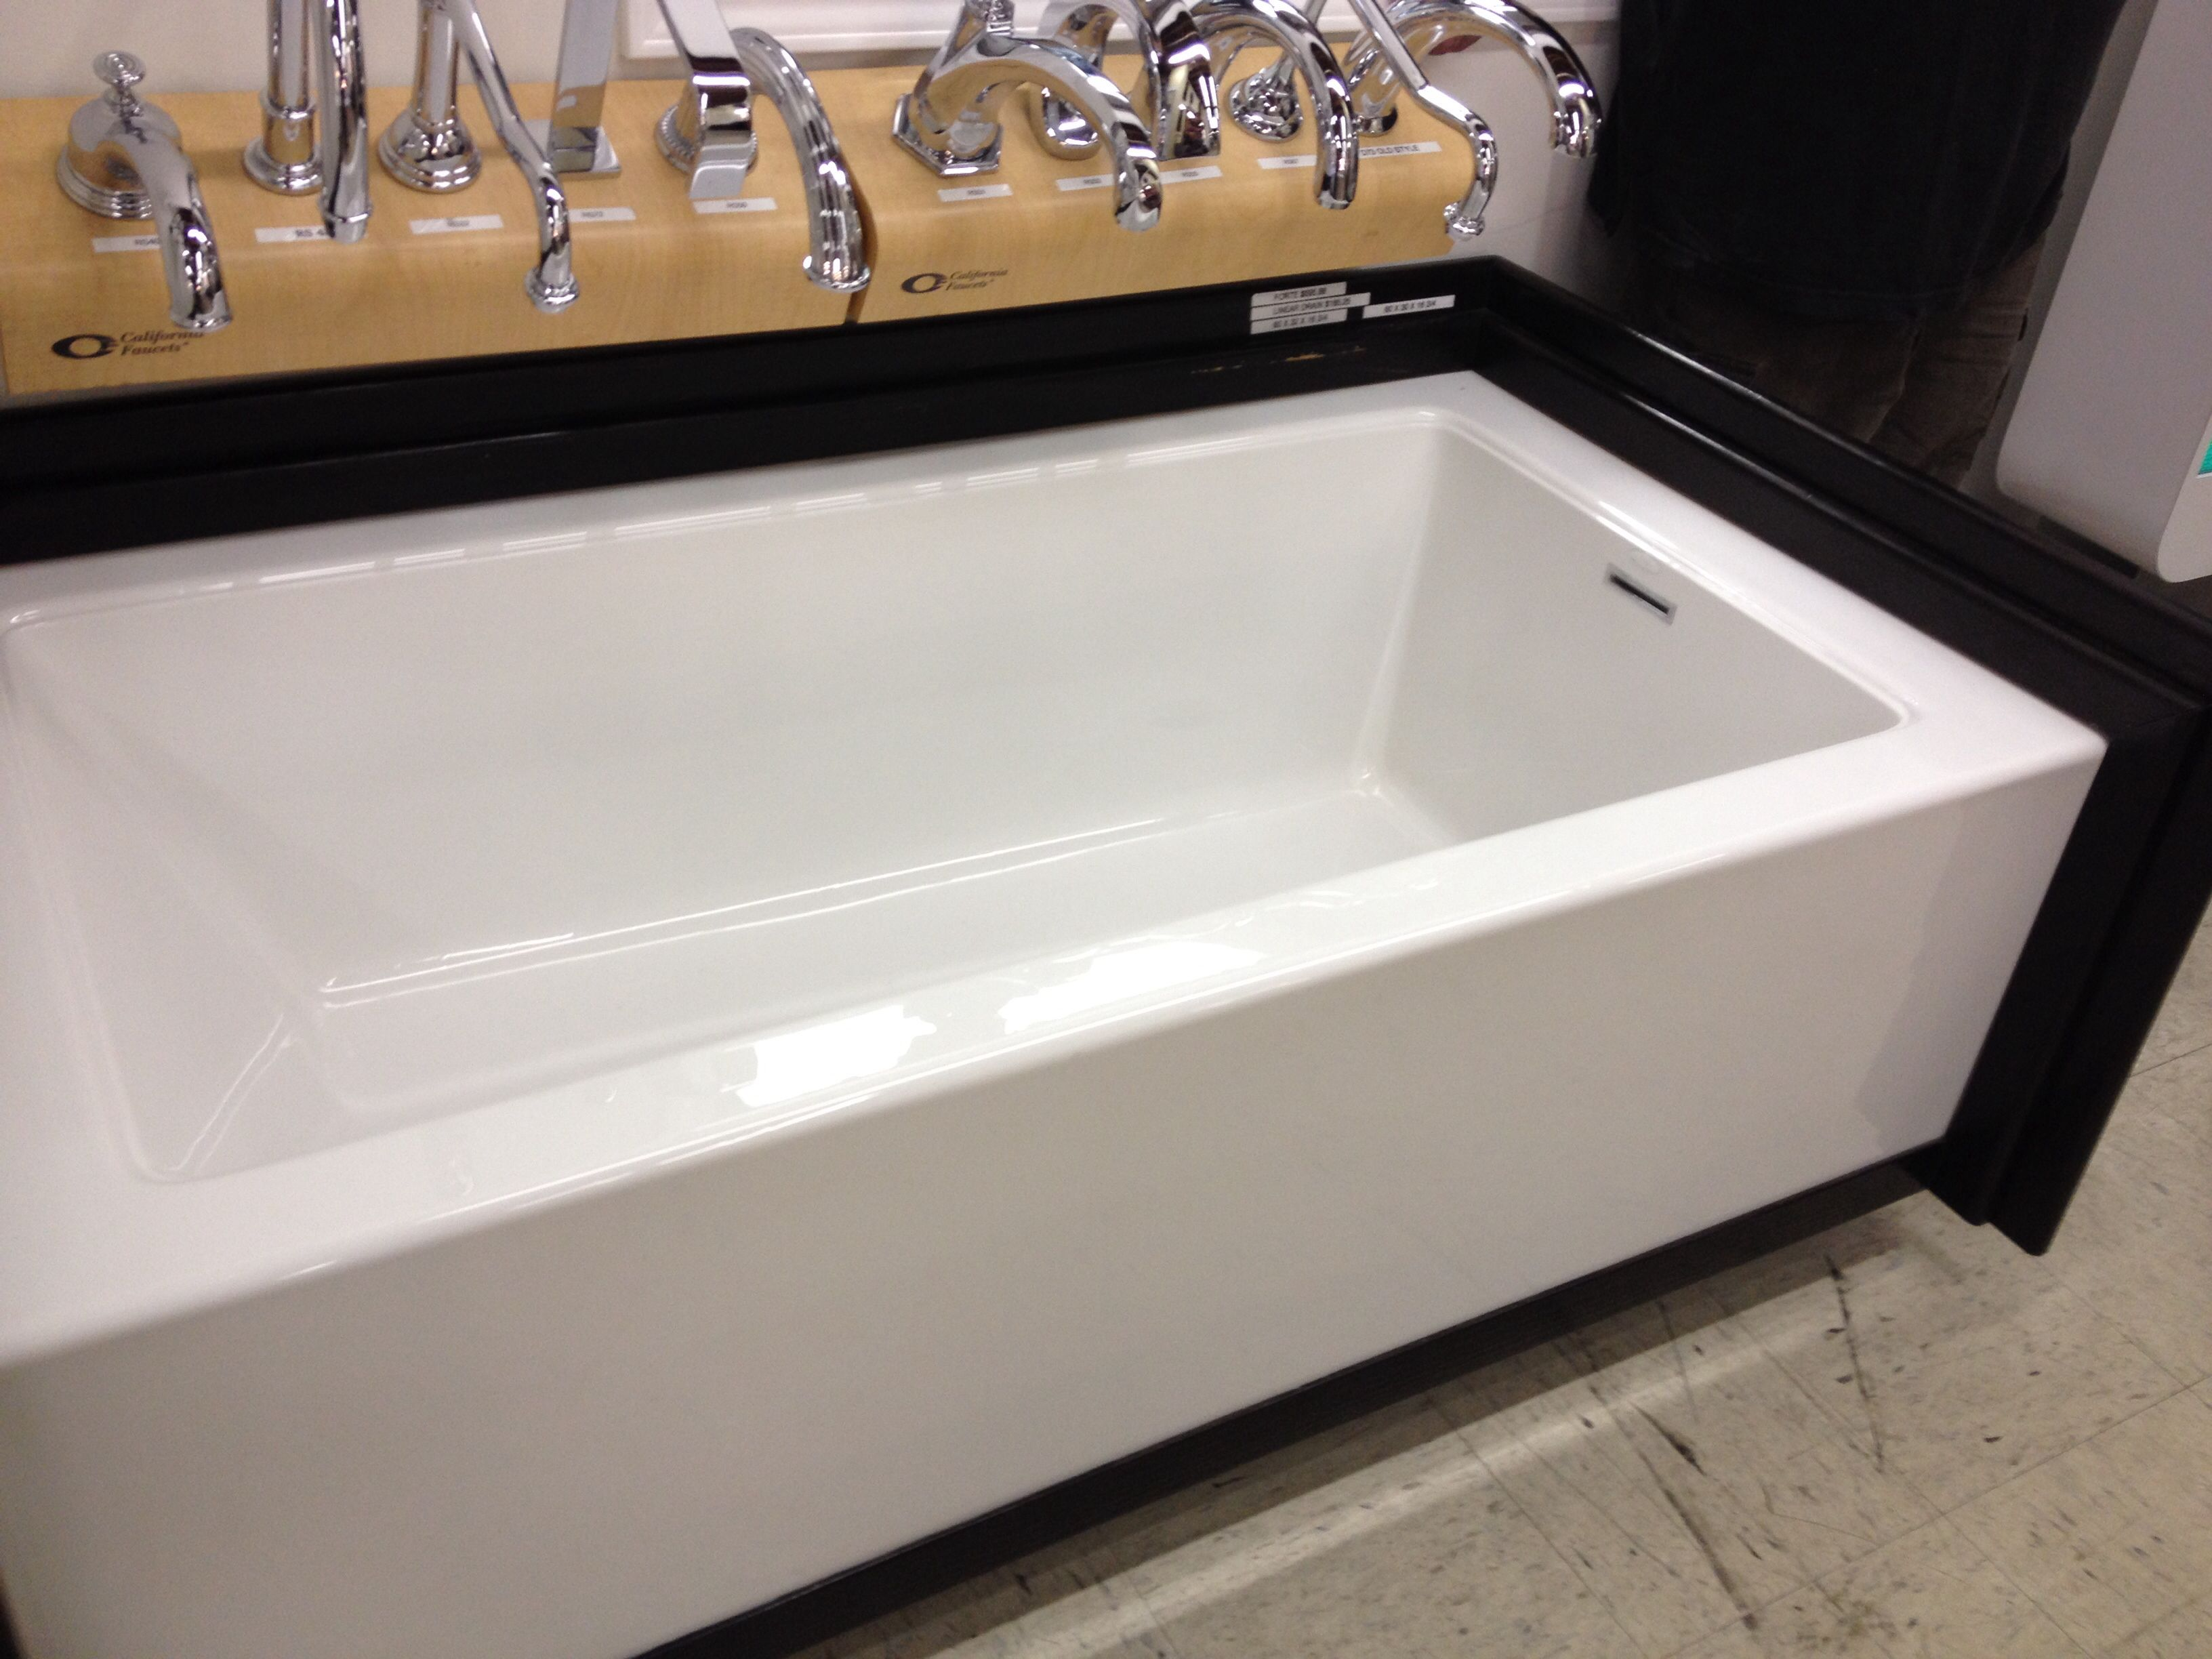 60x30x16 75 Forte Tub With Linear Drain From Reback S In